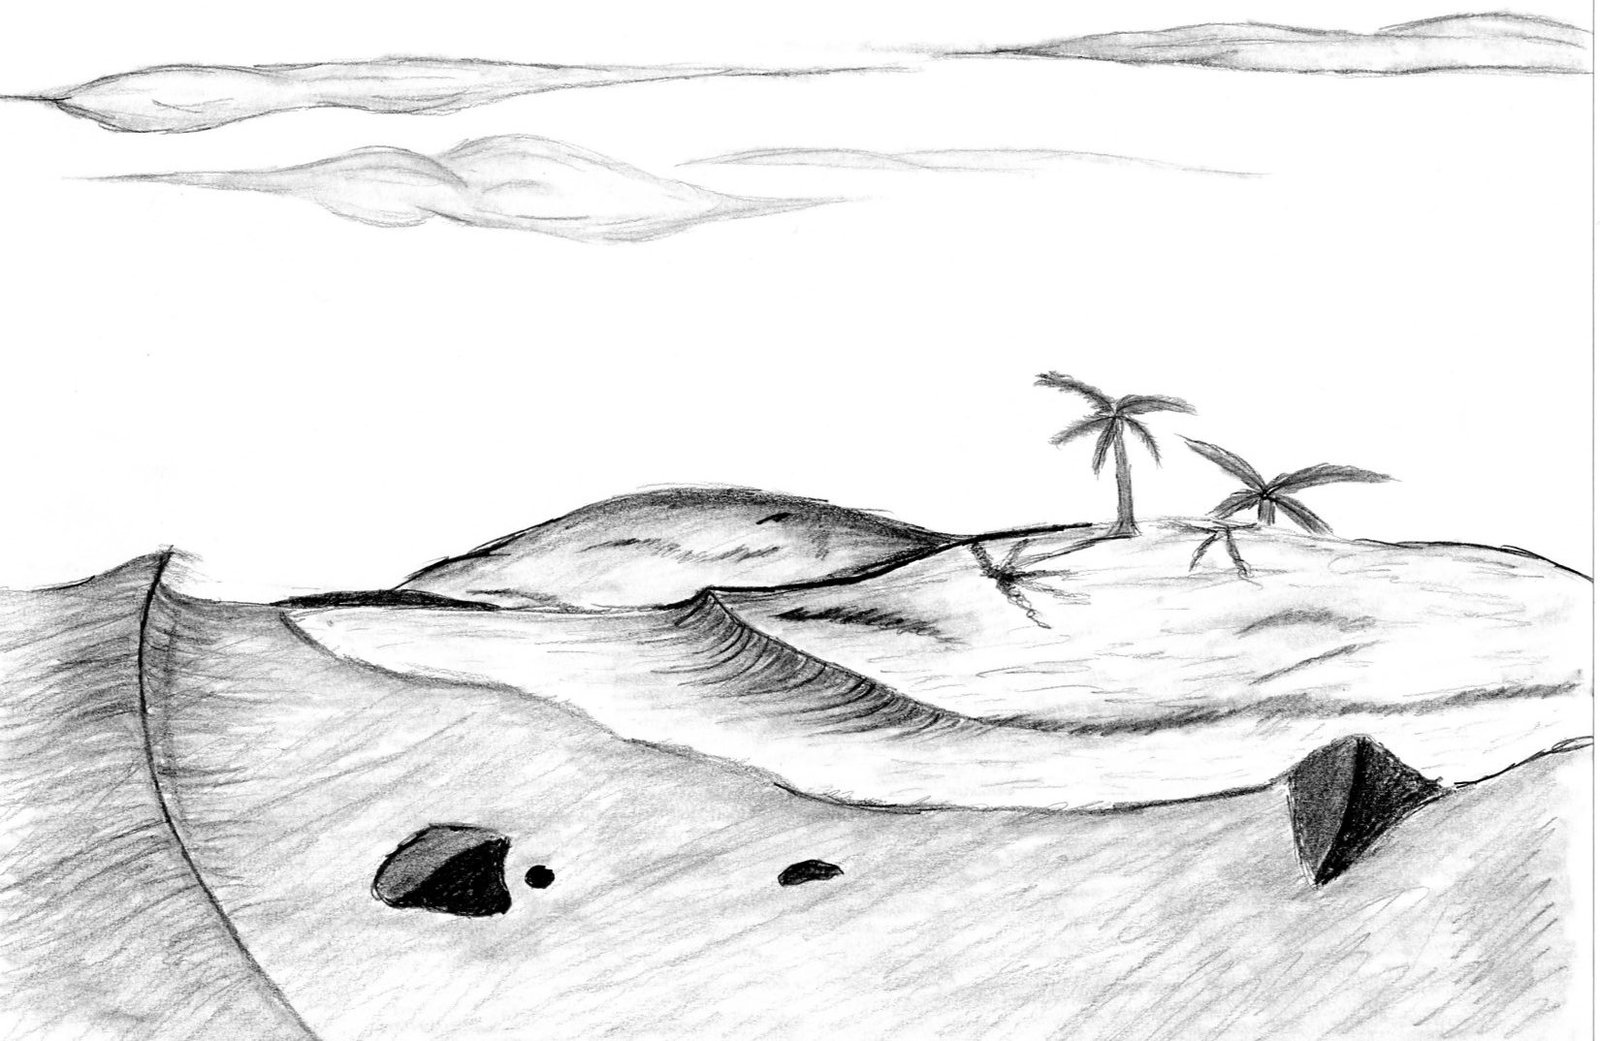 Drawn landscape Landscape Drawn ZeroAme Drawn ZeroAme